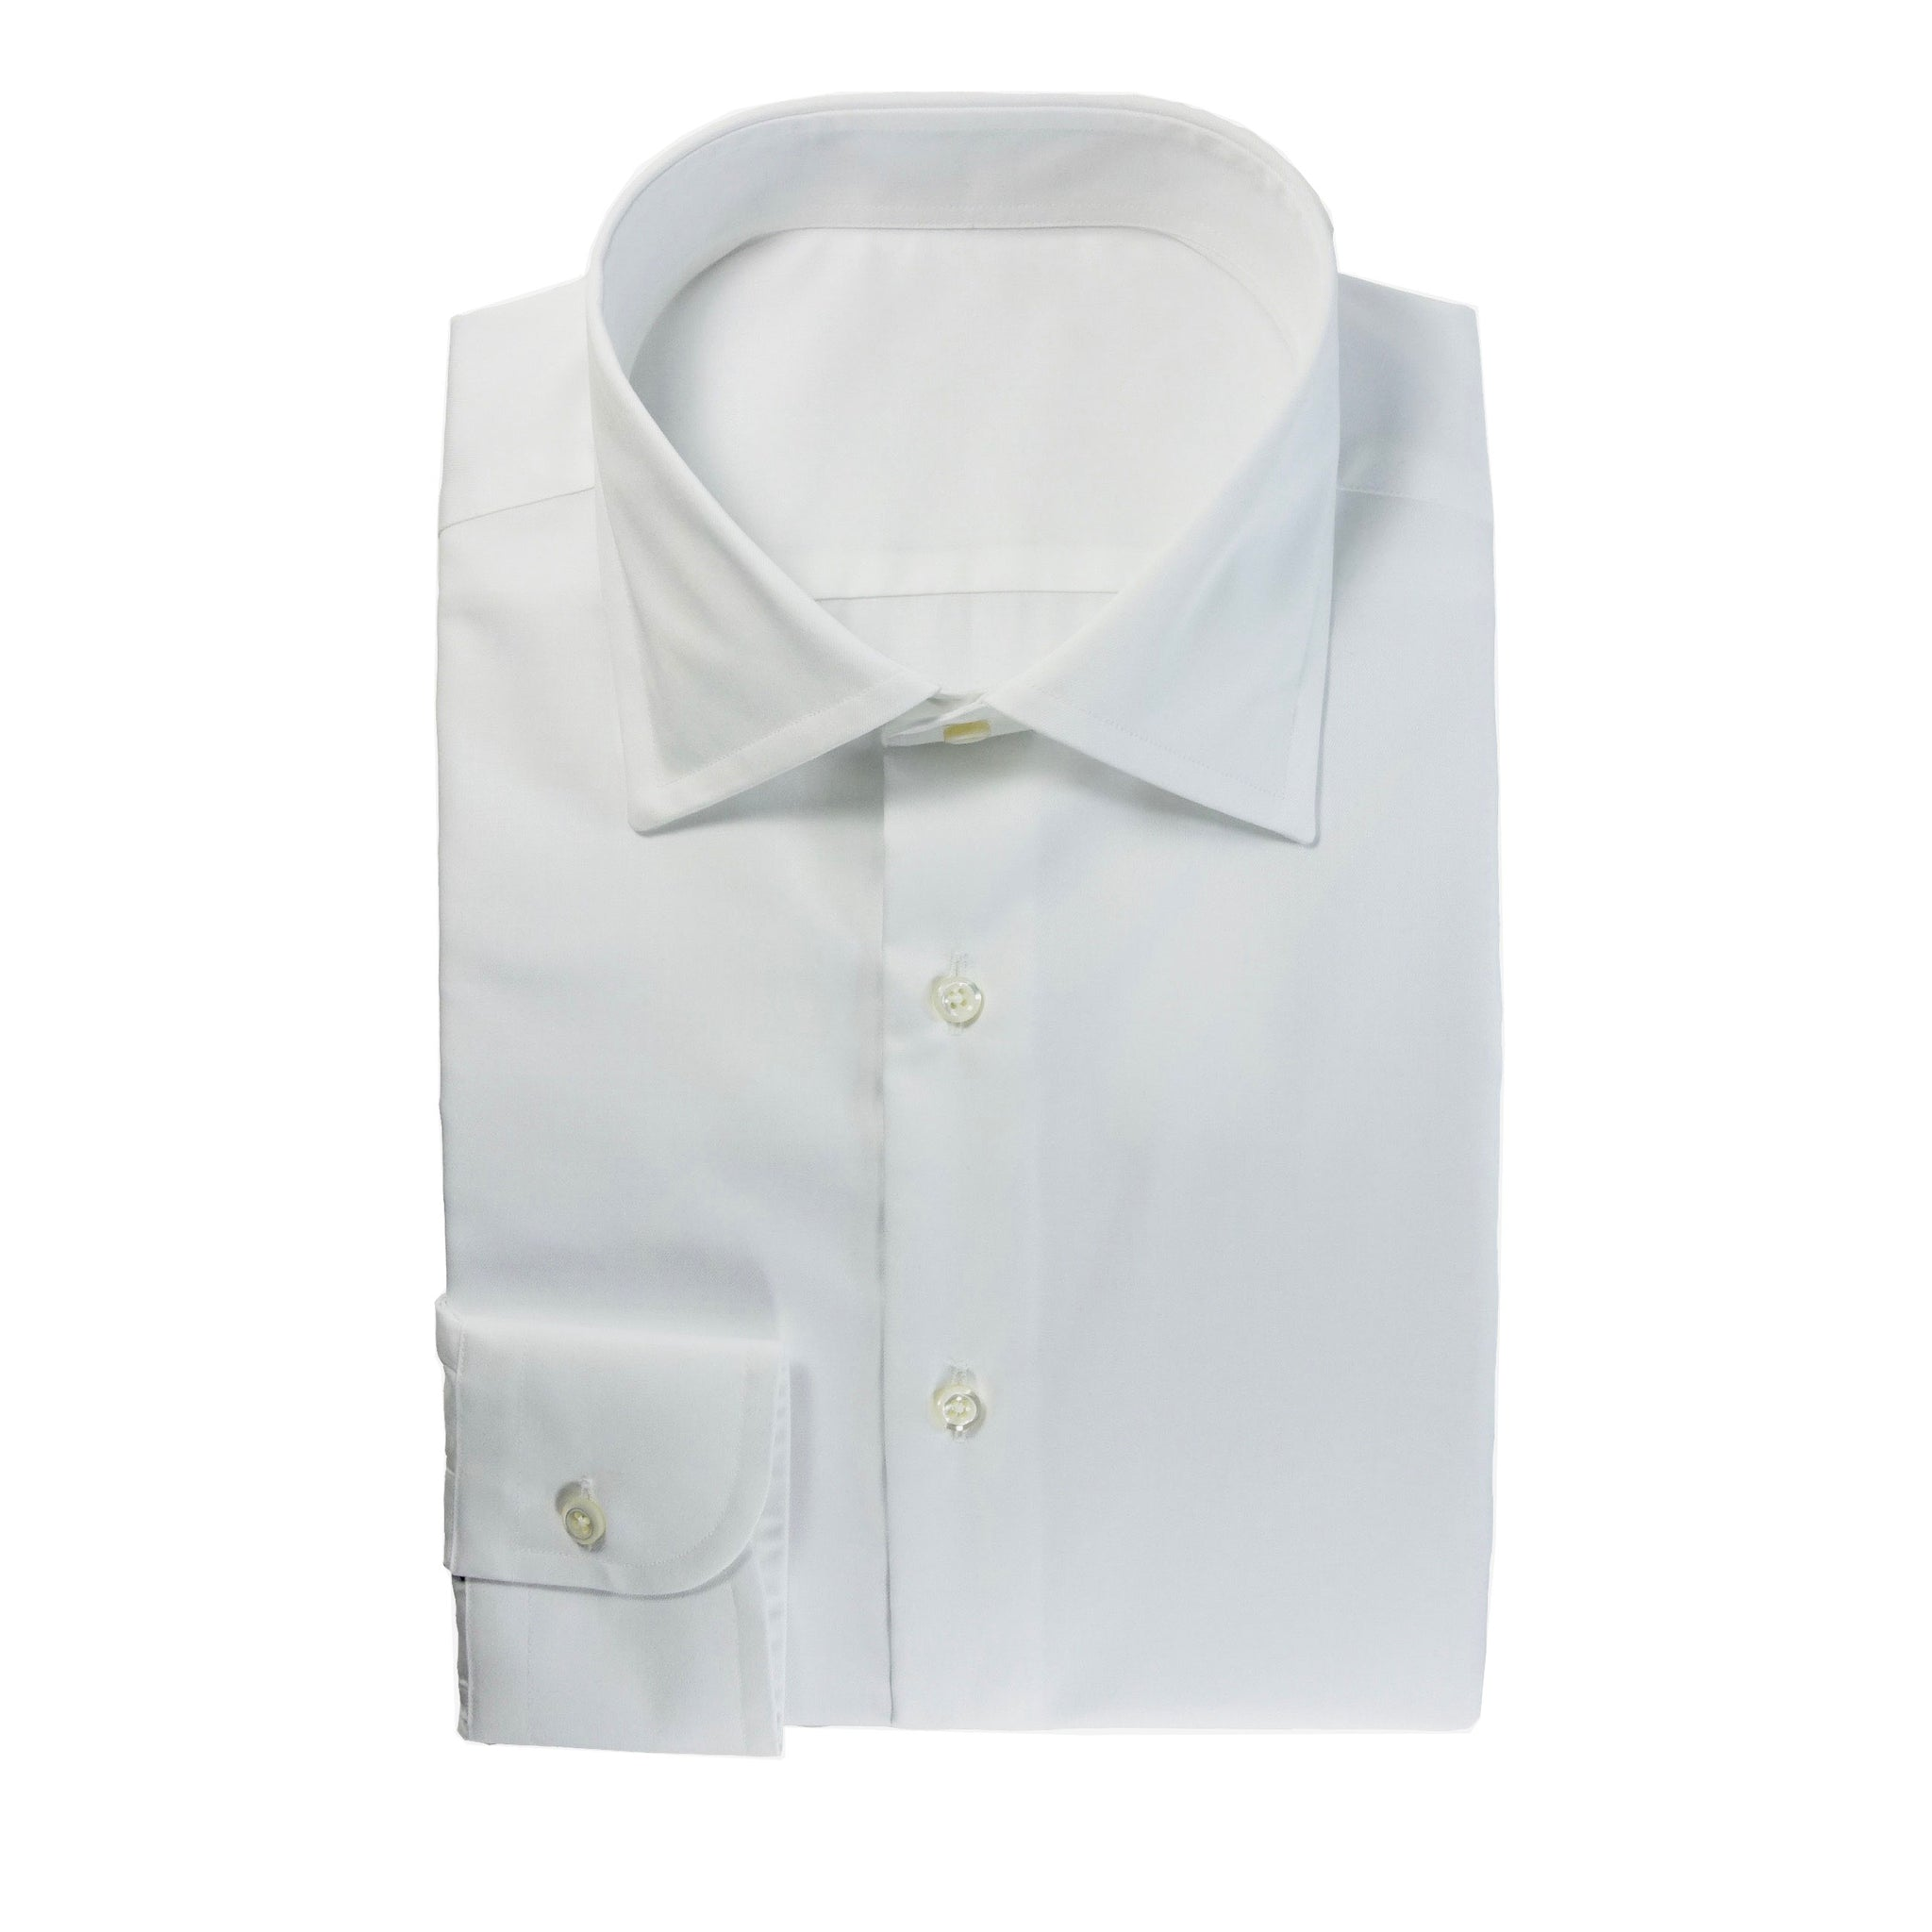 Luxury White Twill Shirt